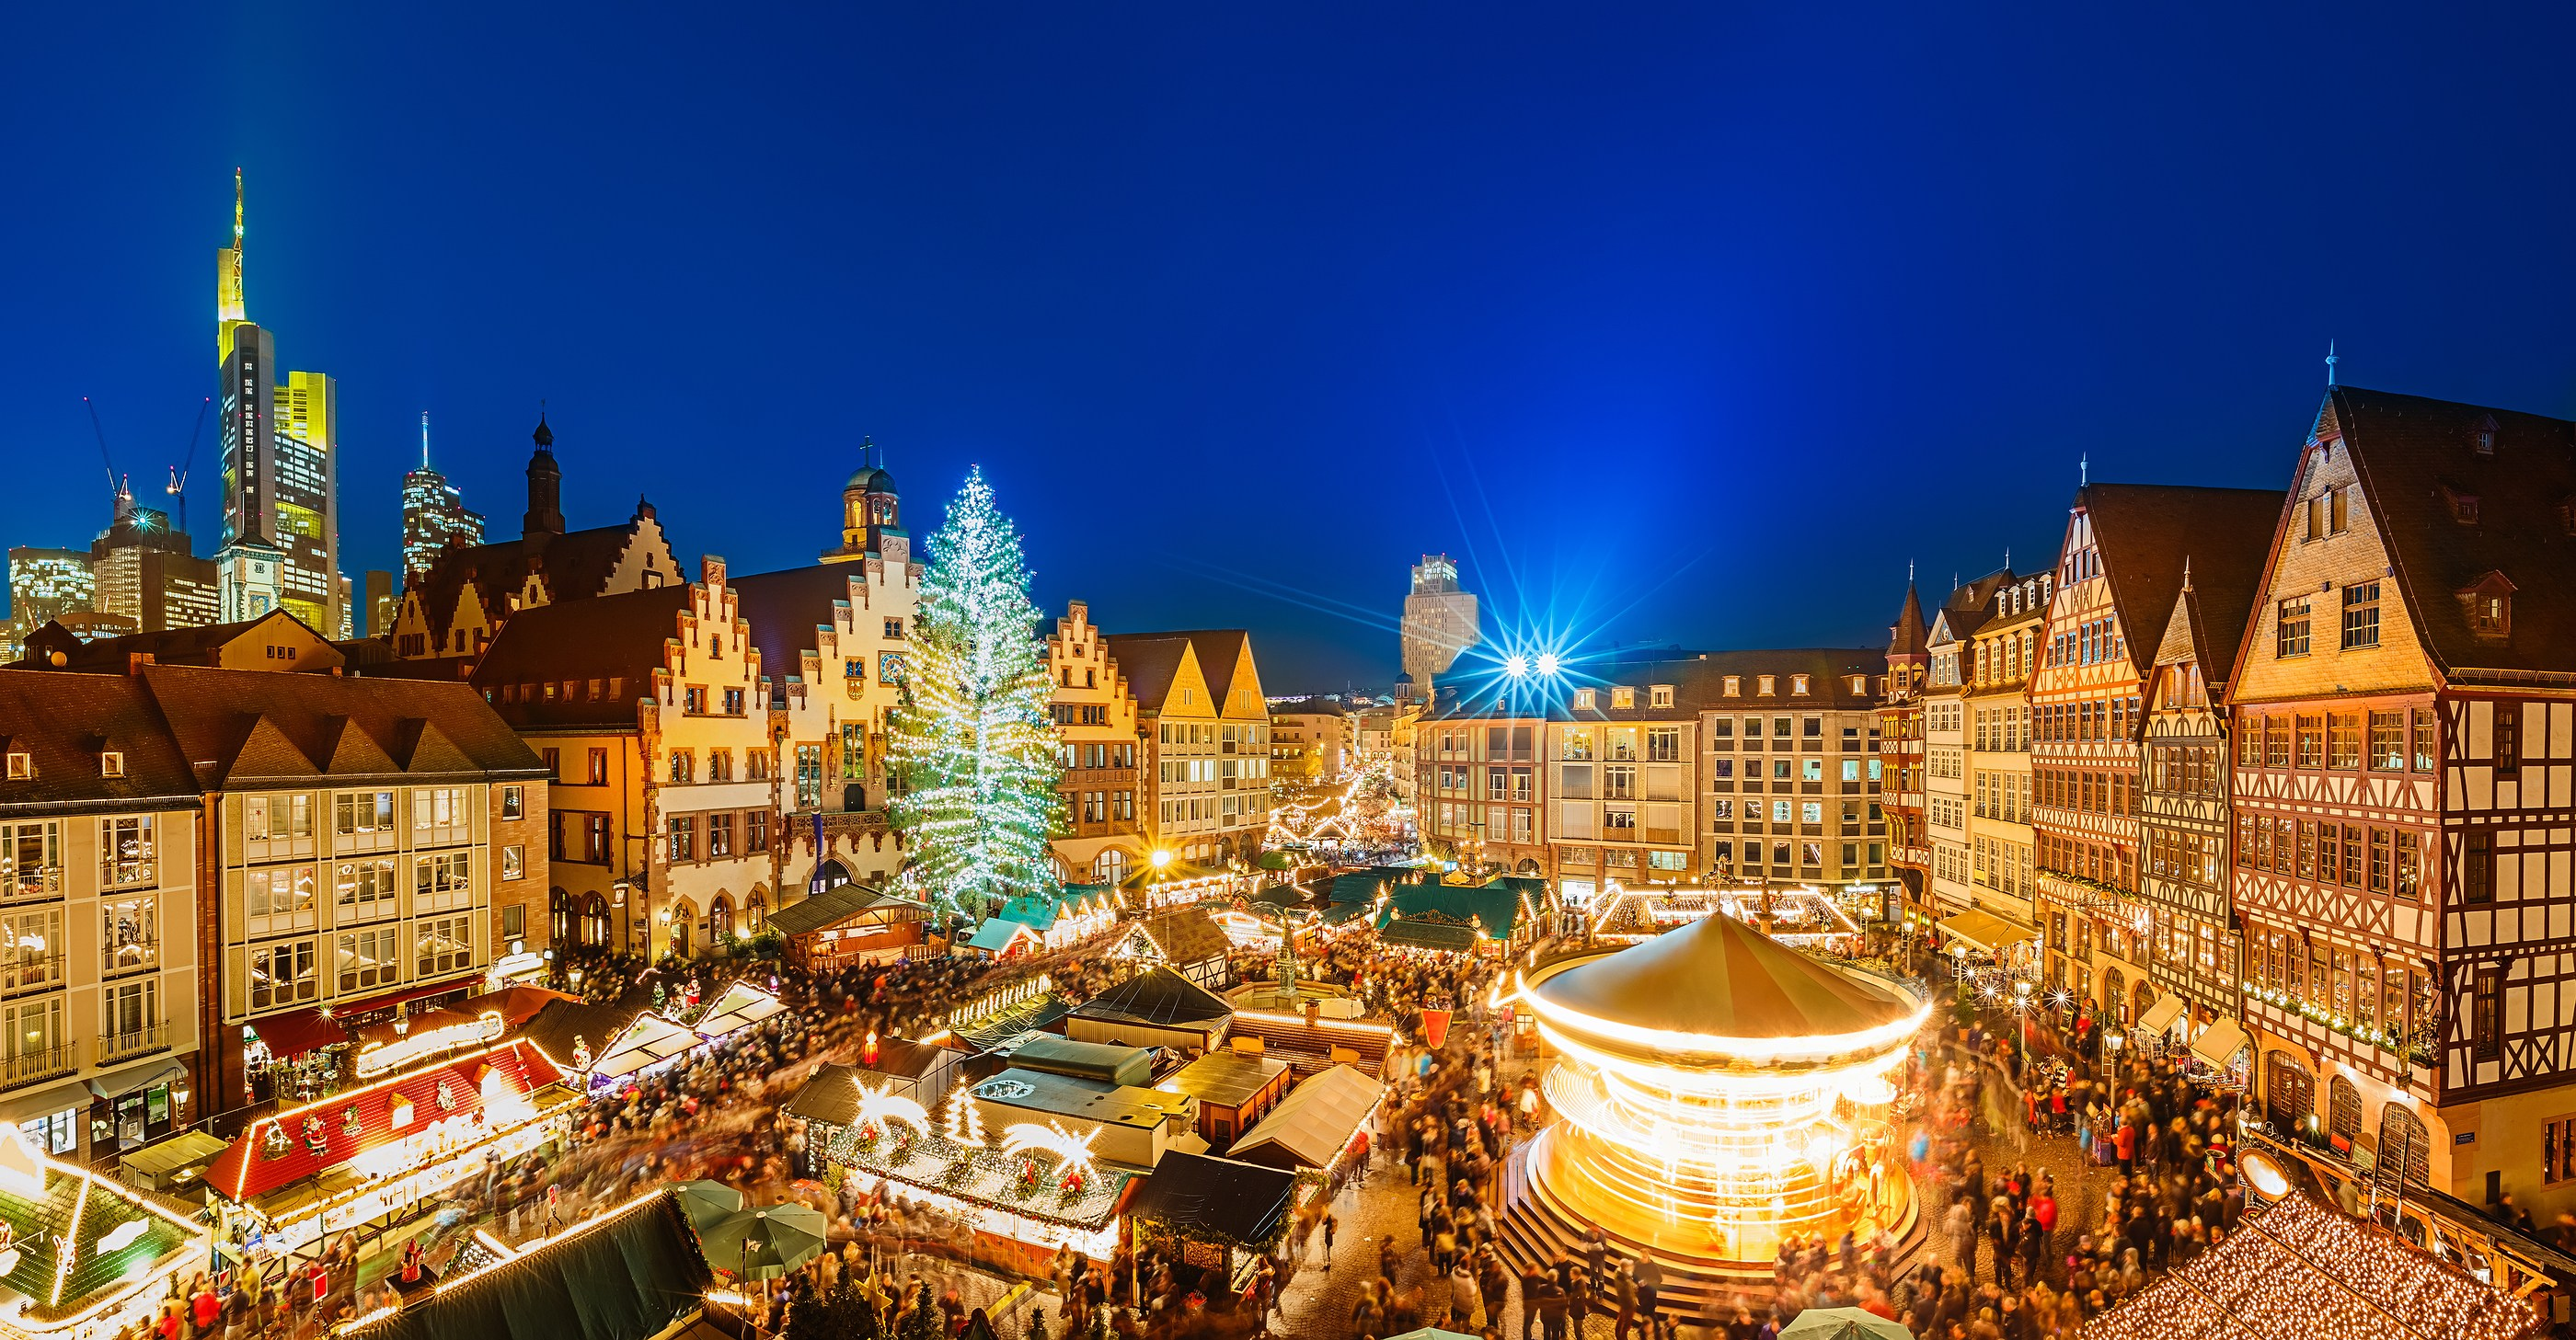 Traditional christmas market in the historic center of Frankfurt